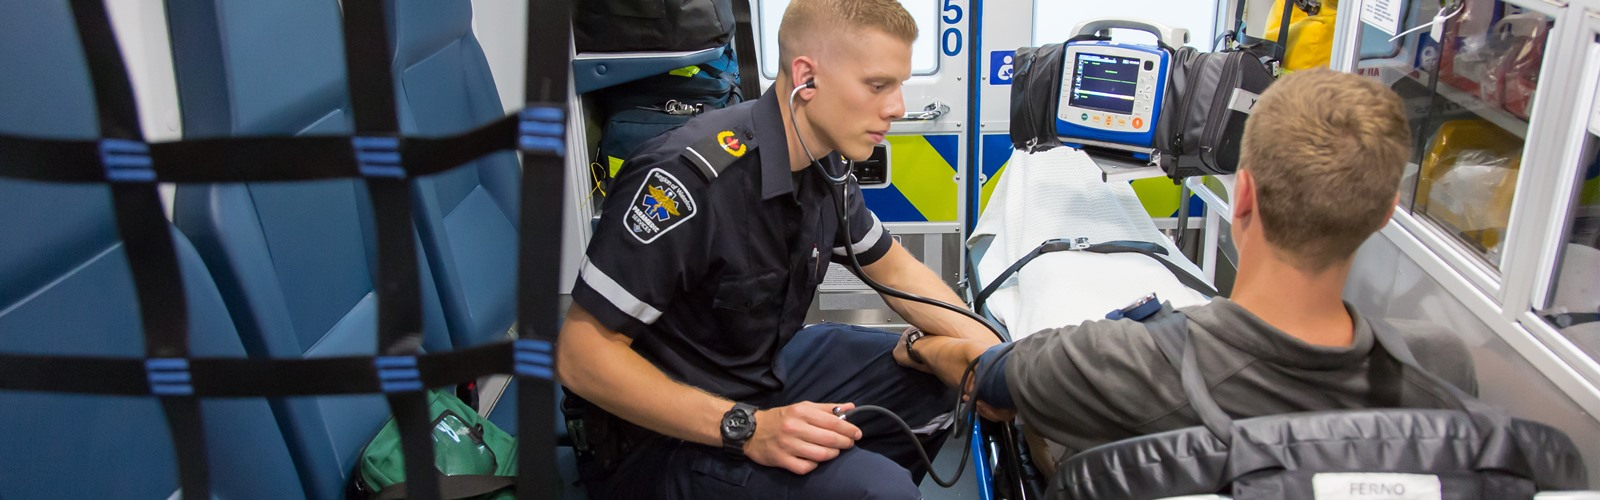 Paramedic treating a patient